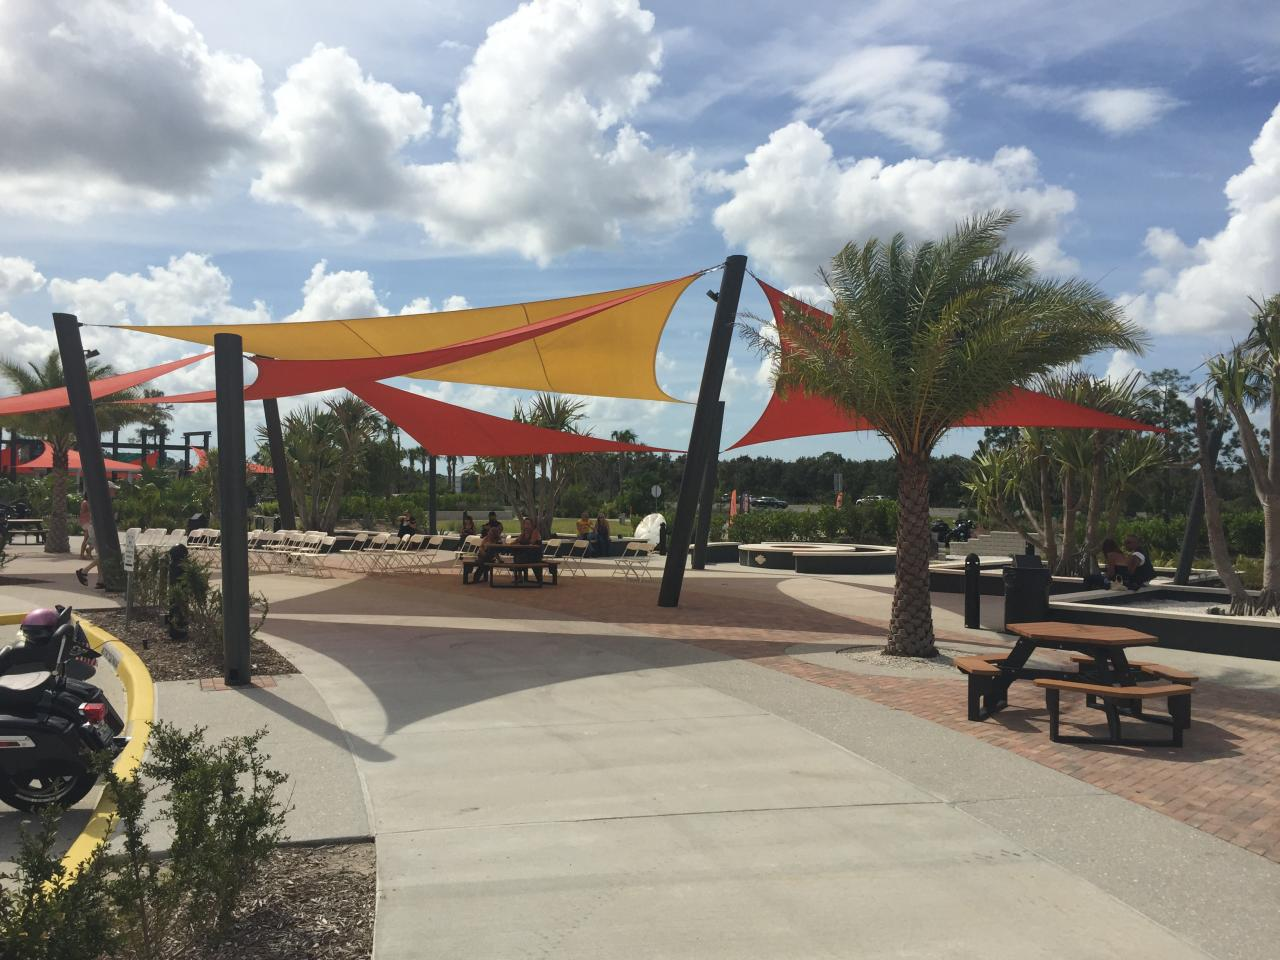 FLORIDA COMMERCIAL SAIL SHADE STRUCTURE CONTRACTOR